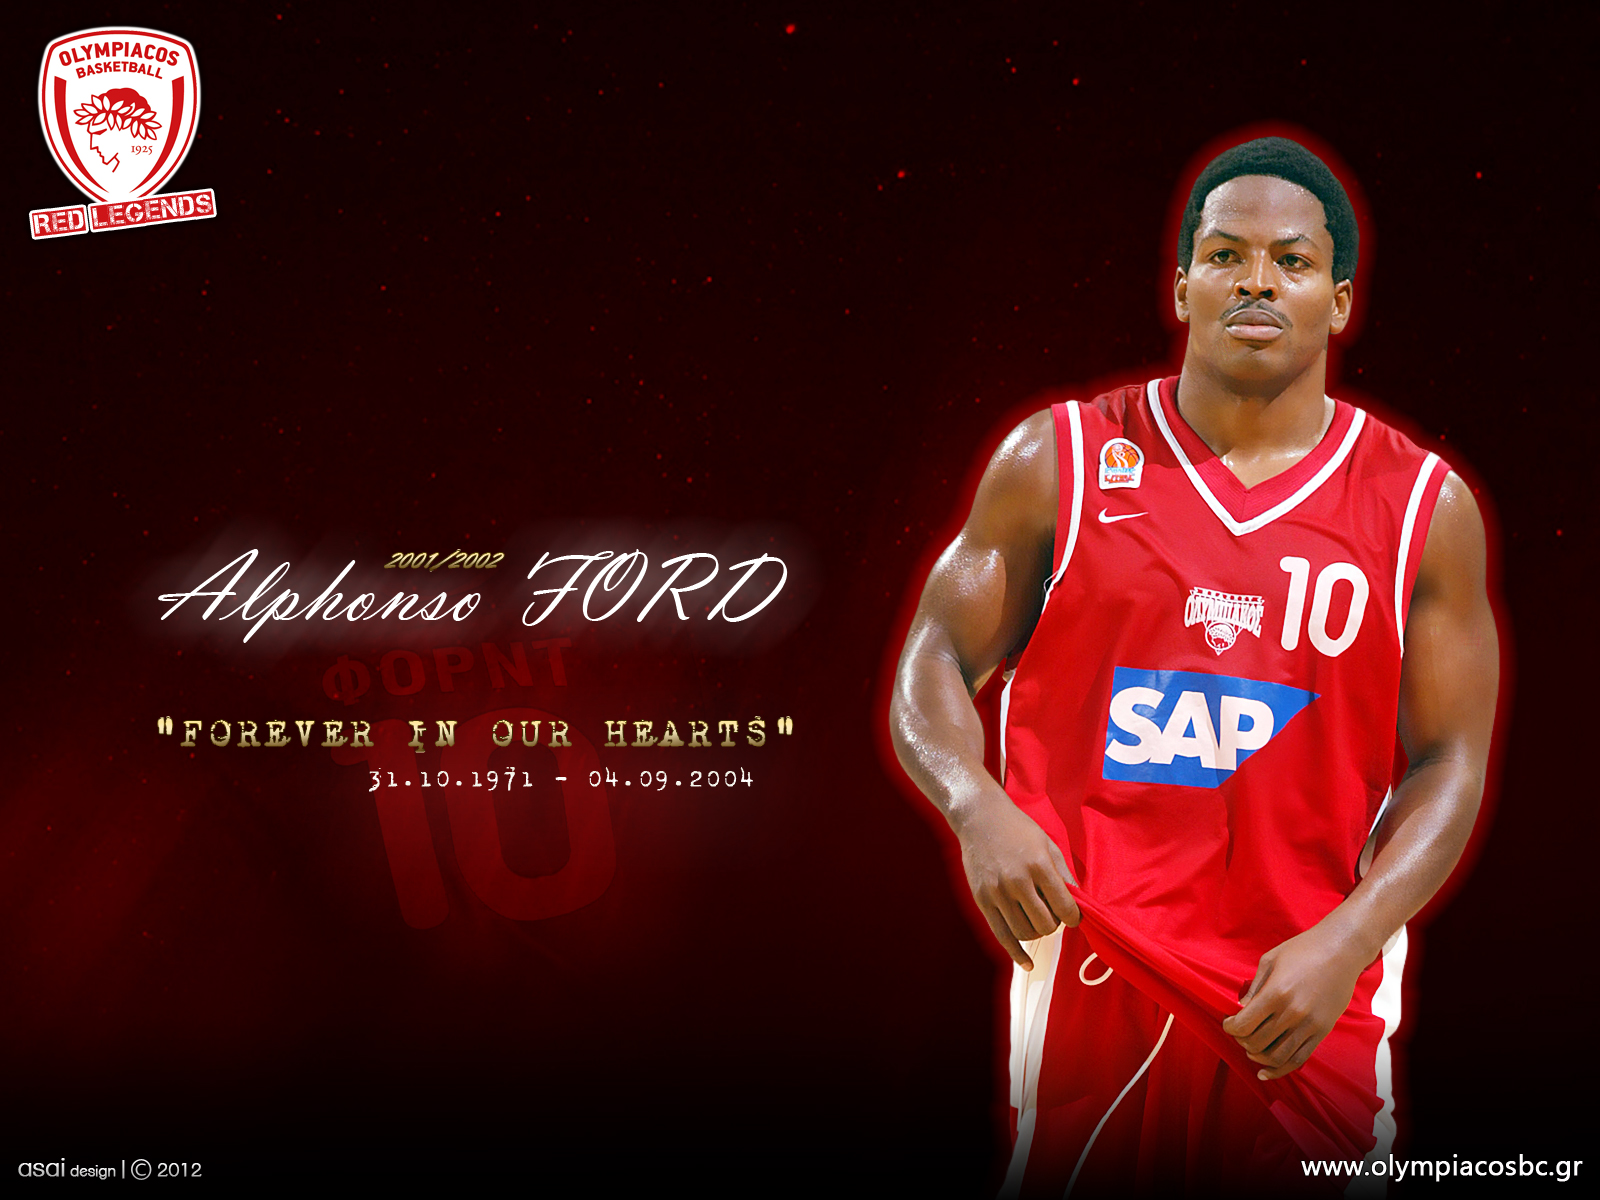 The Red Legends wallpapers Olympiacos BC